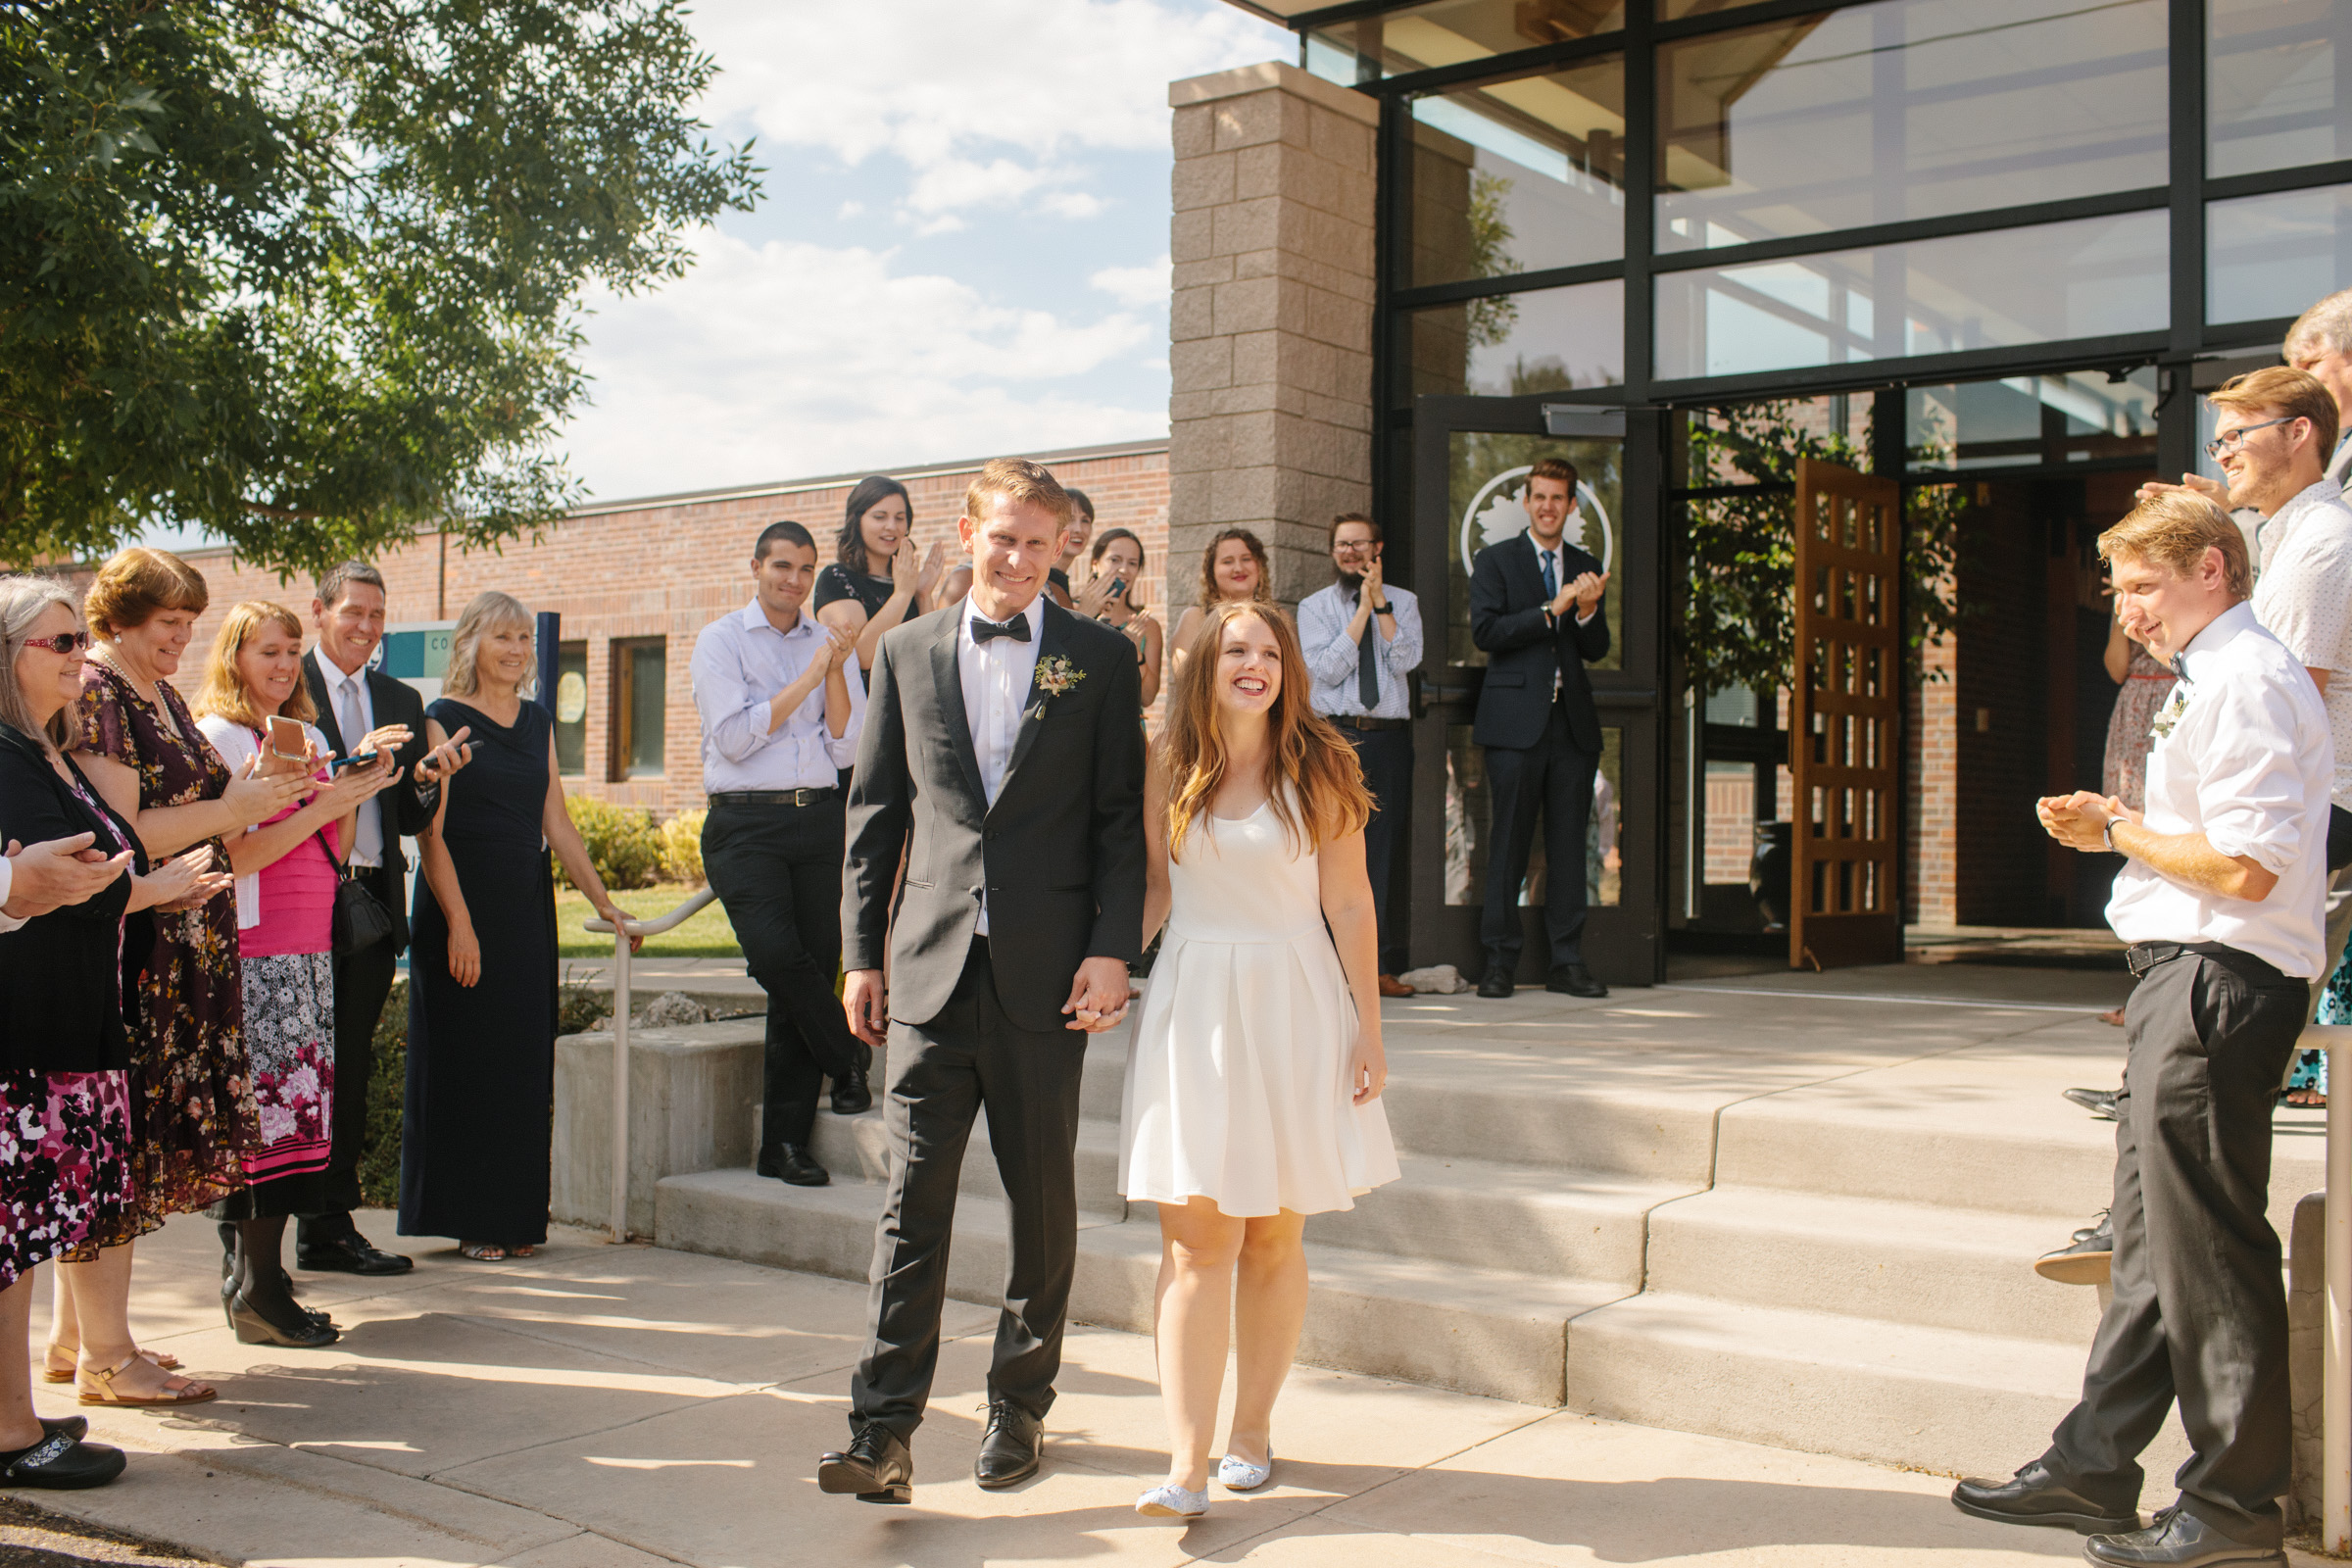 fort-collins-wedding-photographers-111.jpg